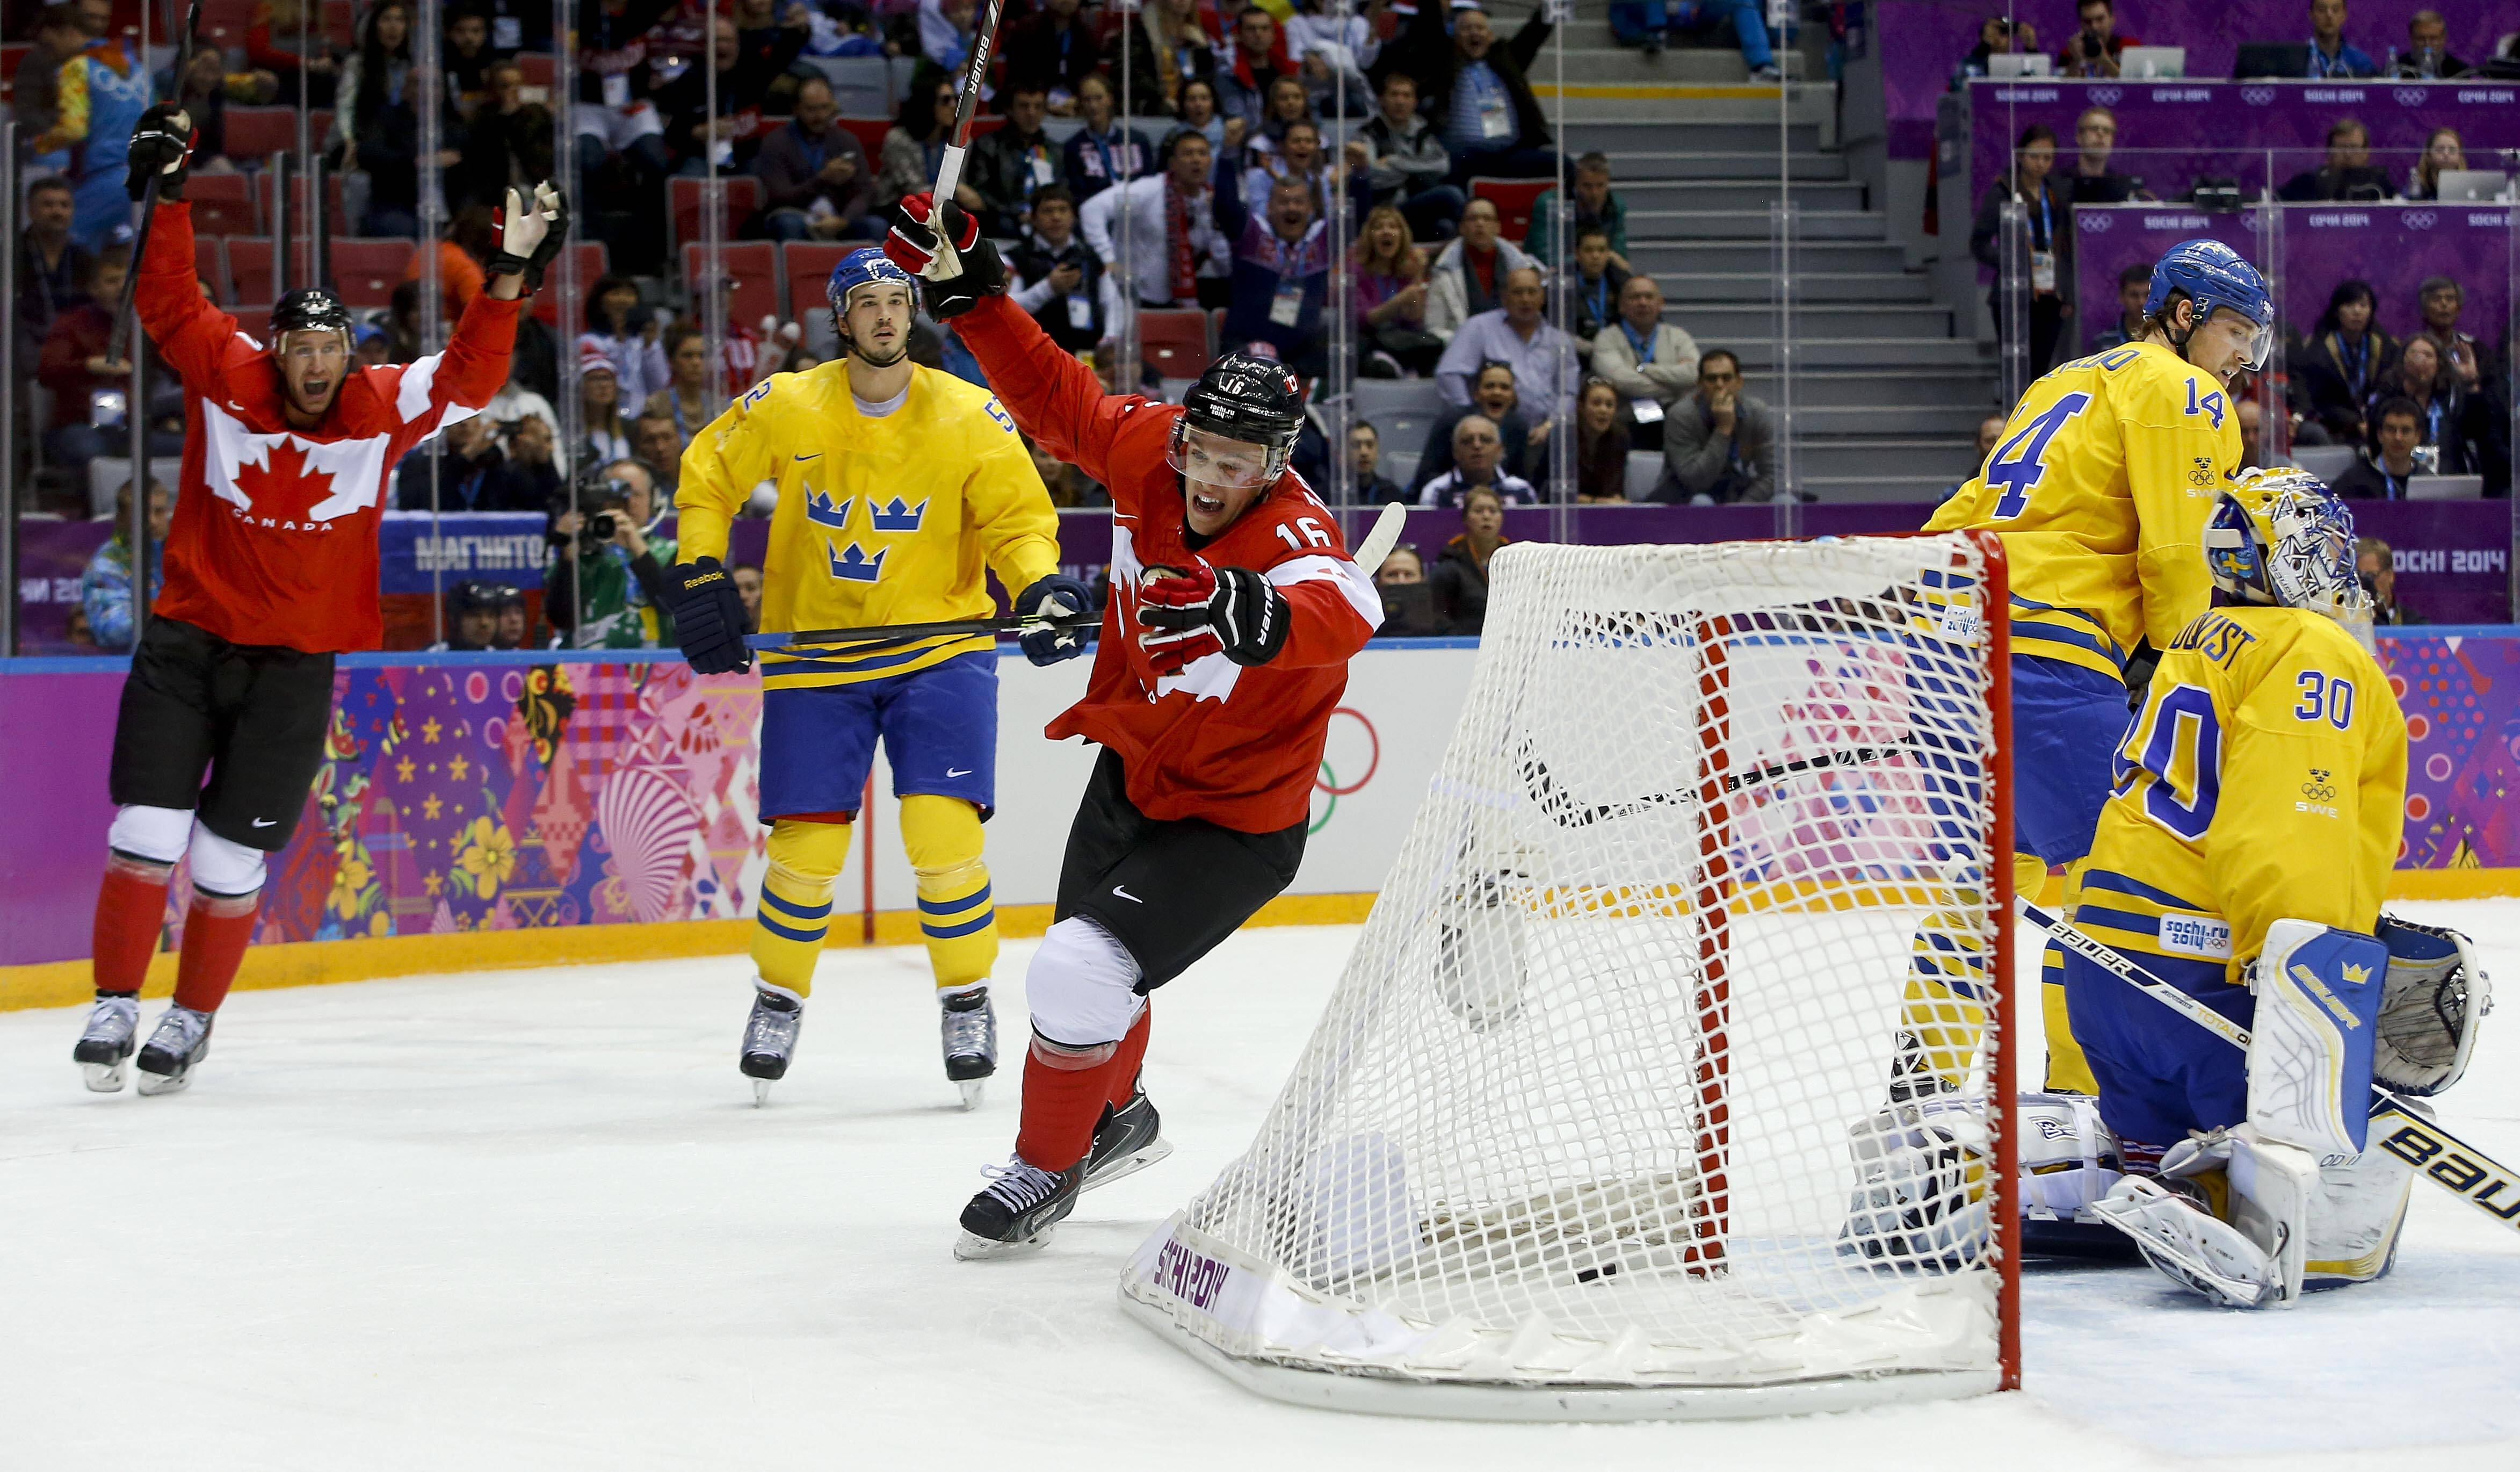 Canada forward Jonathan Toews, center, reacts upon scoring a goal against Sweden during the first period of the men's gold medal ice hockey game at the 2014 Winter Olympics, Sunday, Feb. 23, 2014, in Sochi, Russia.